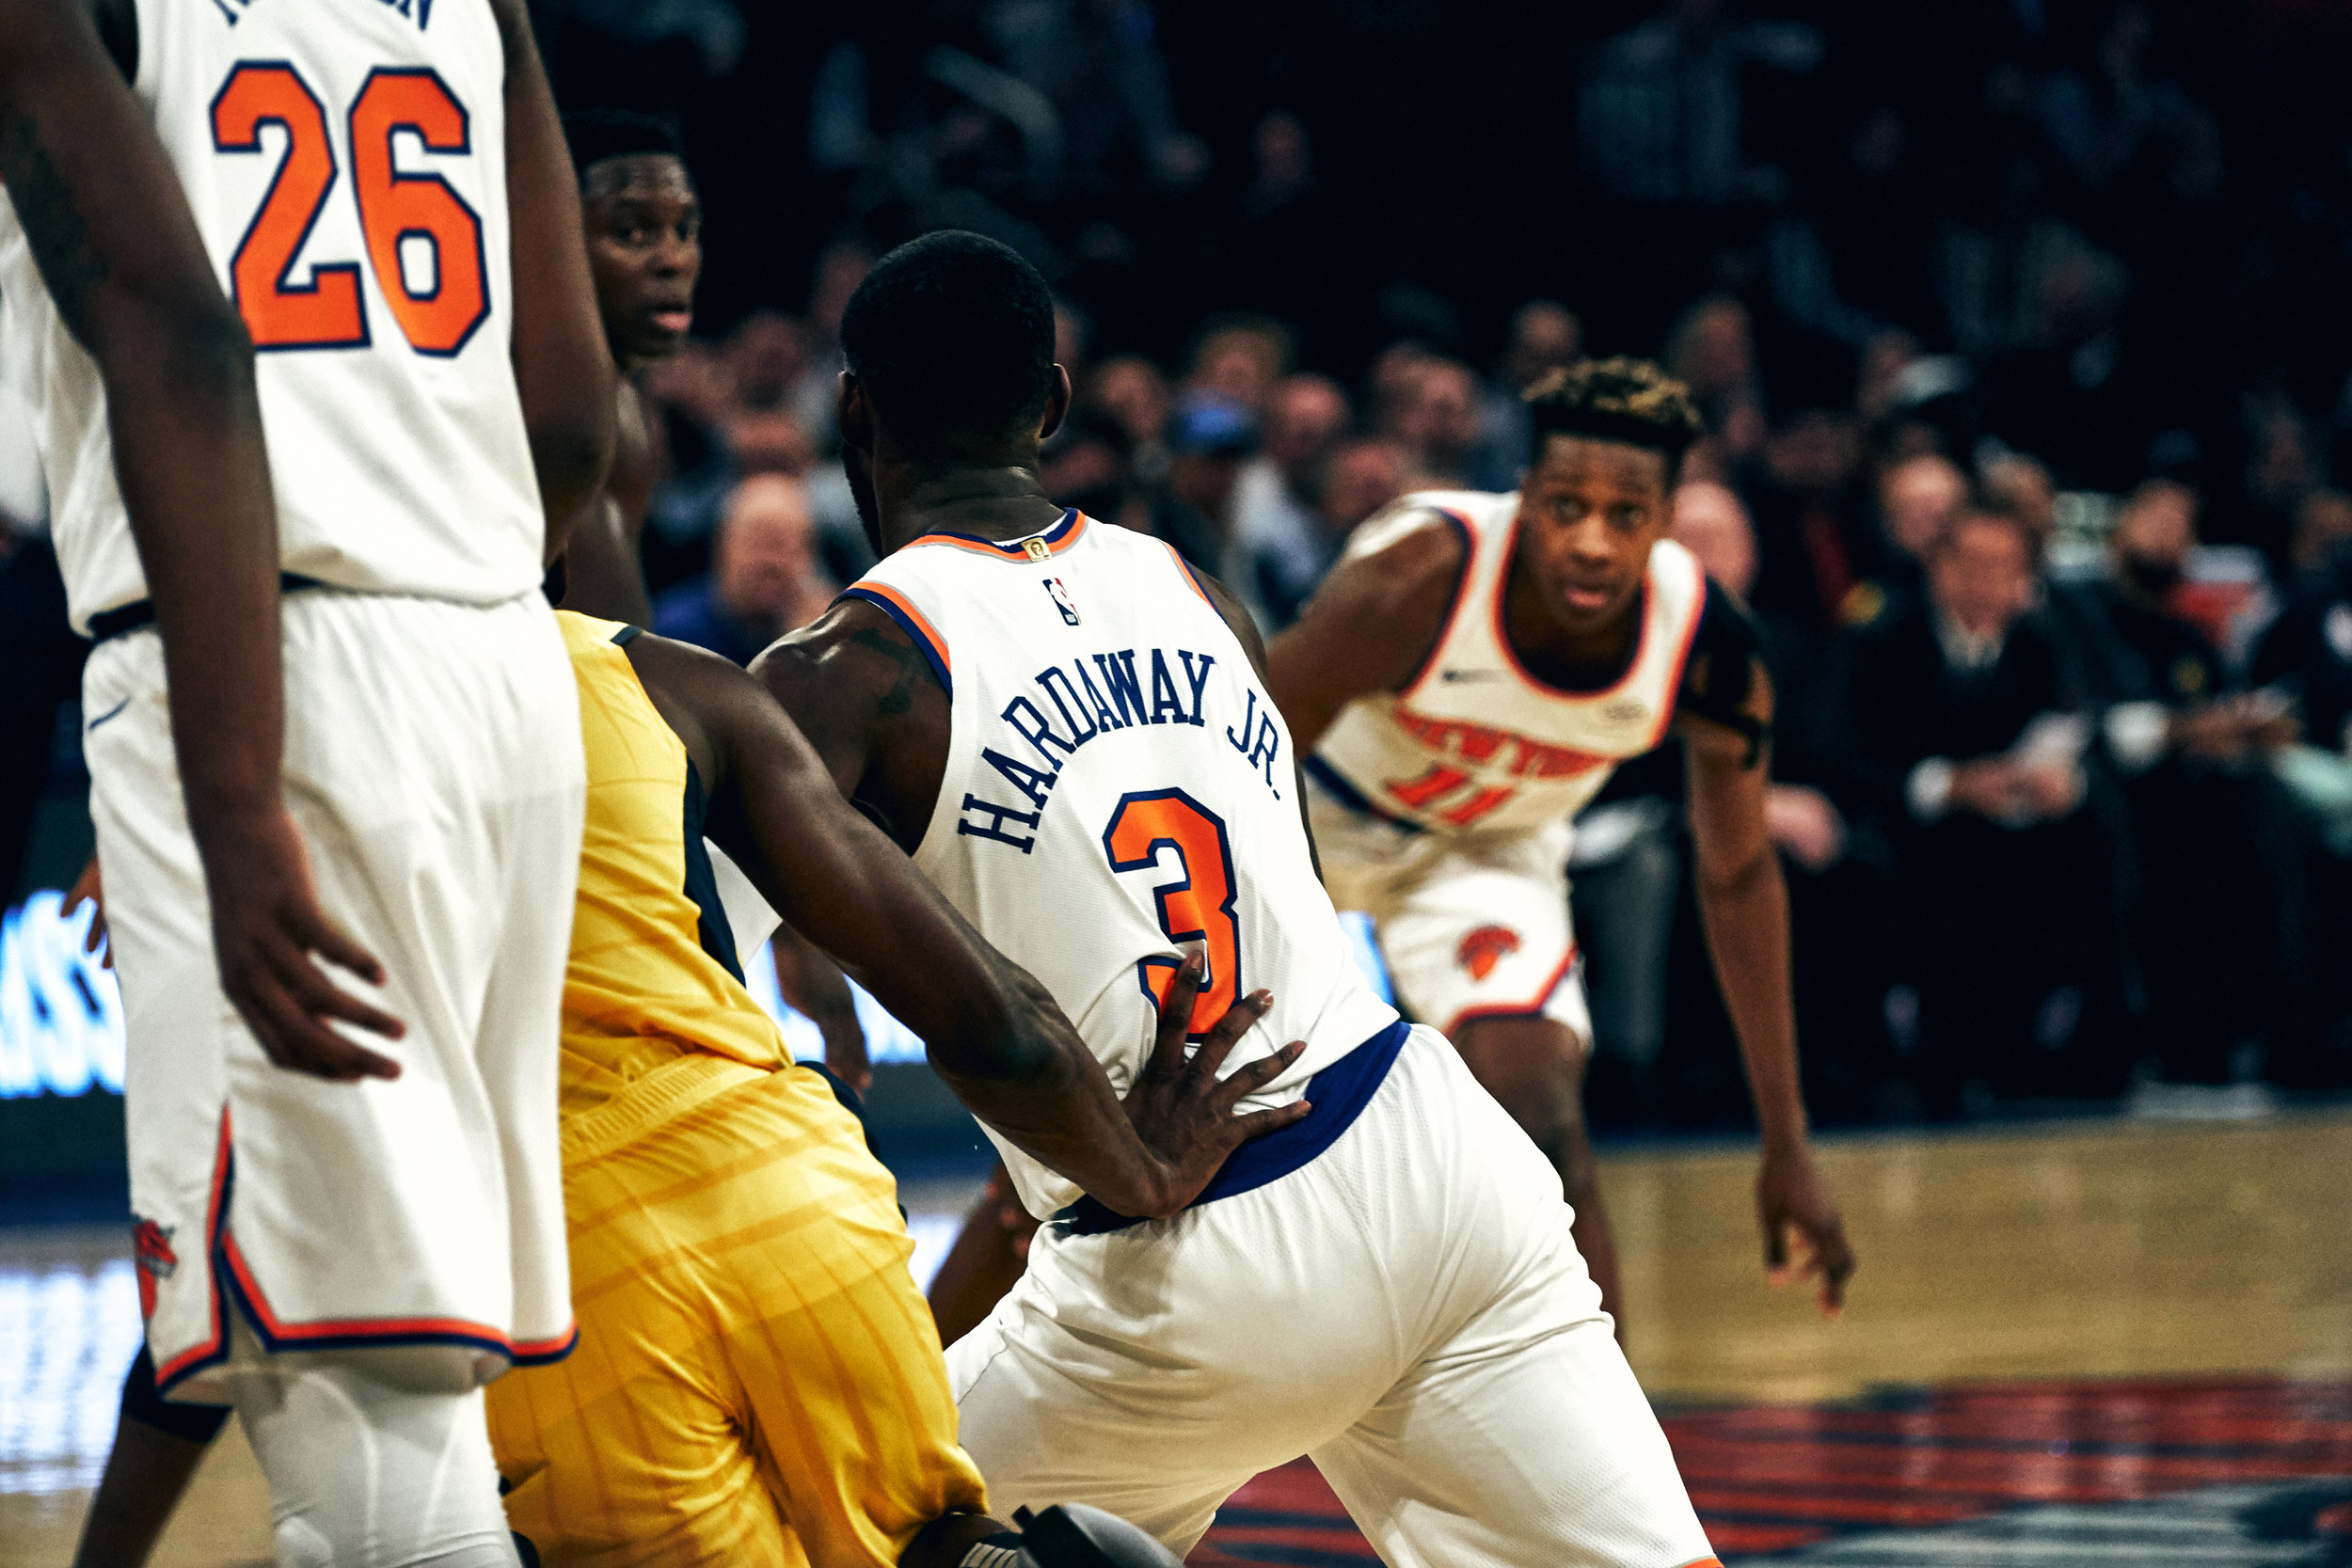 Indiana Pacers vs New York Knicks - October 31st, 2018